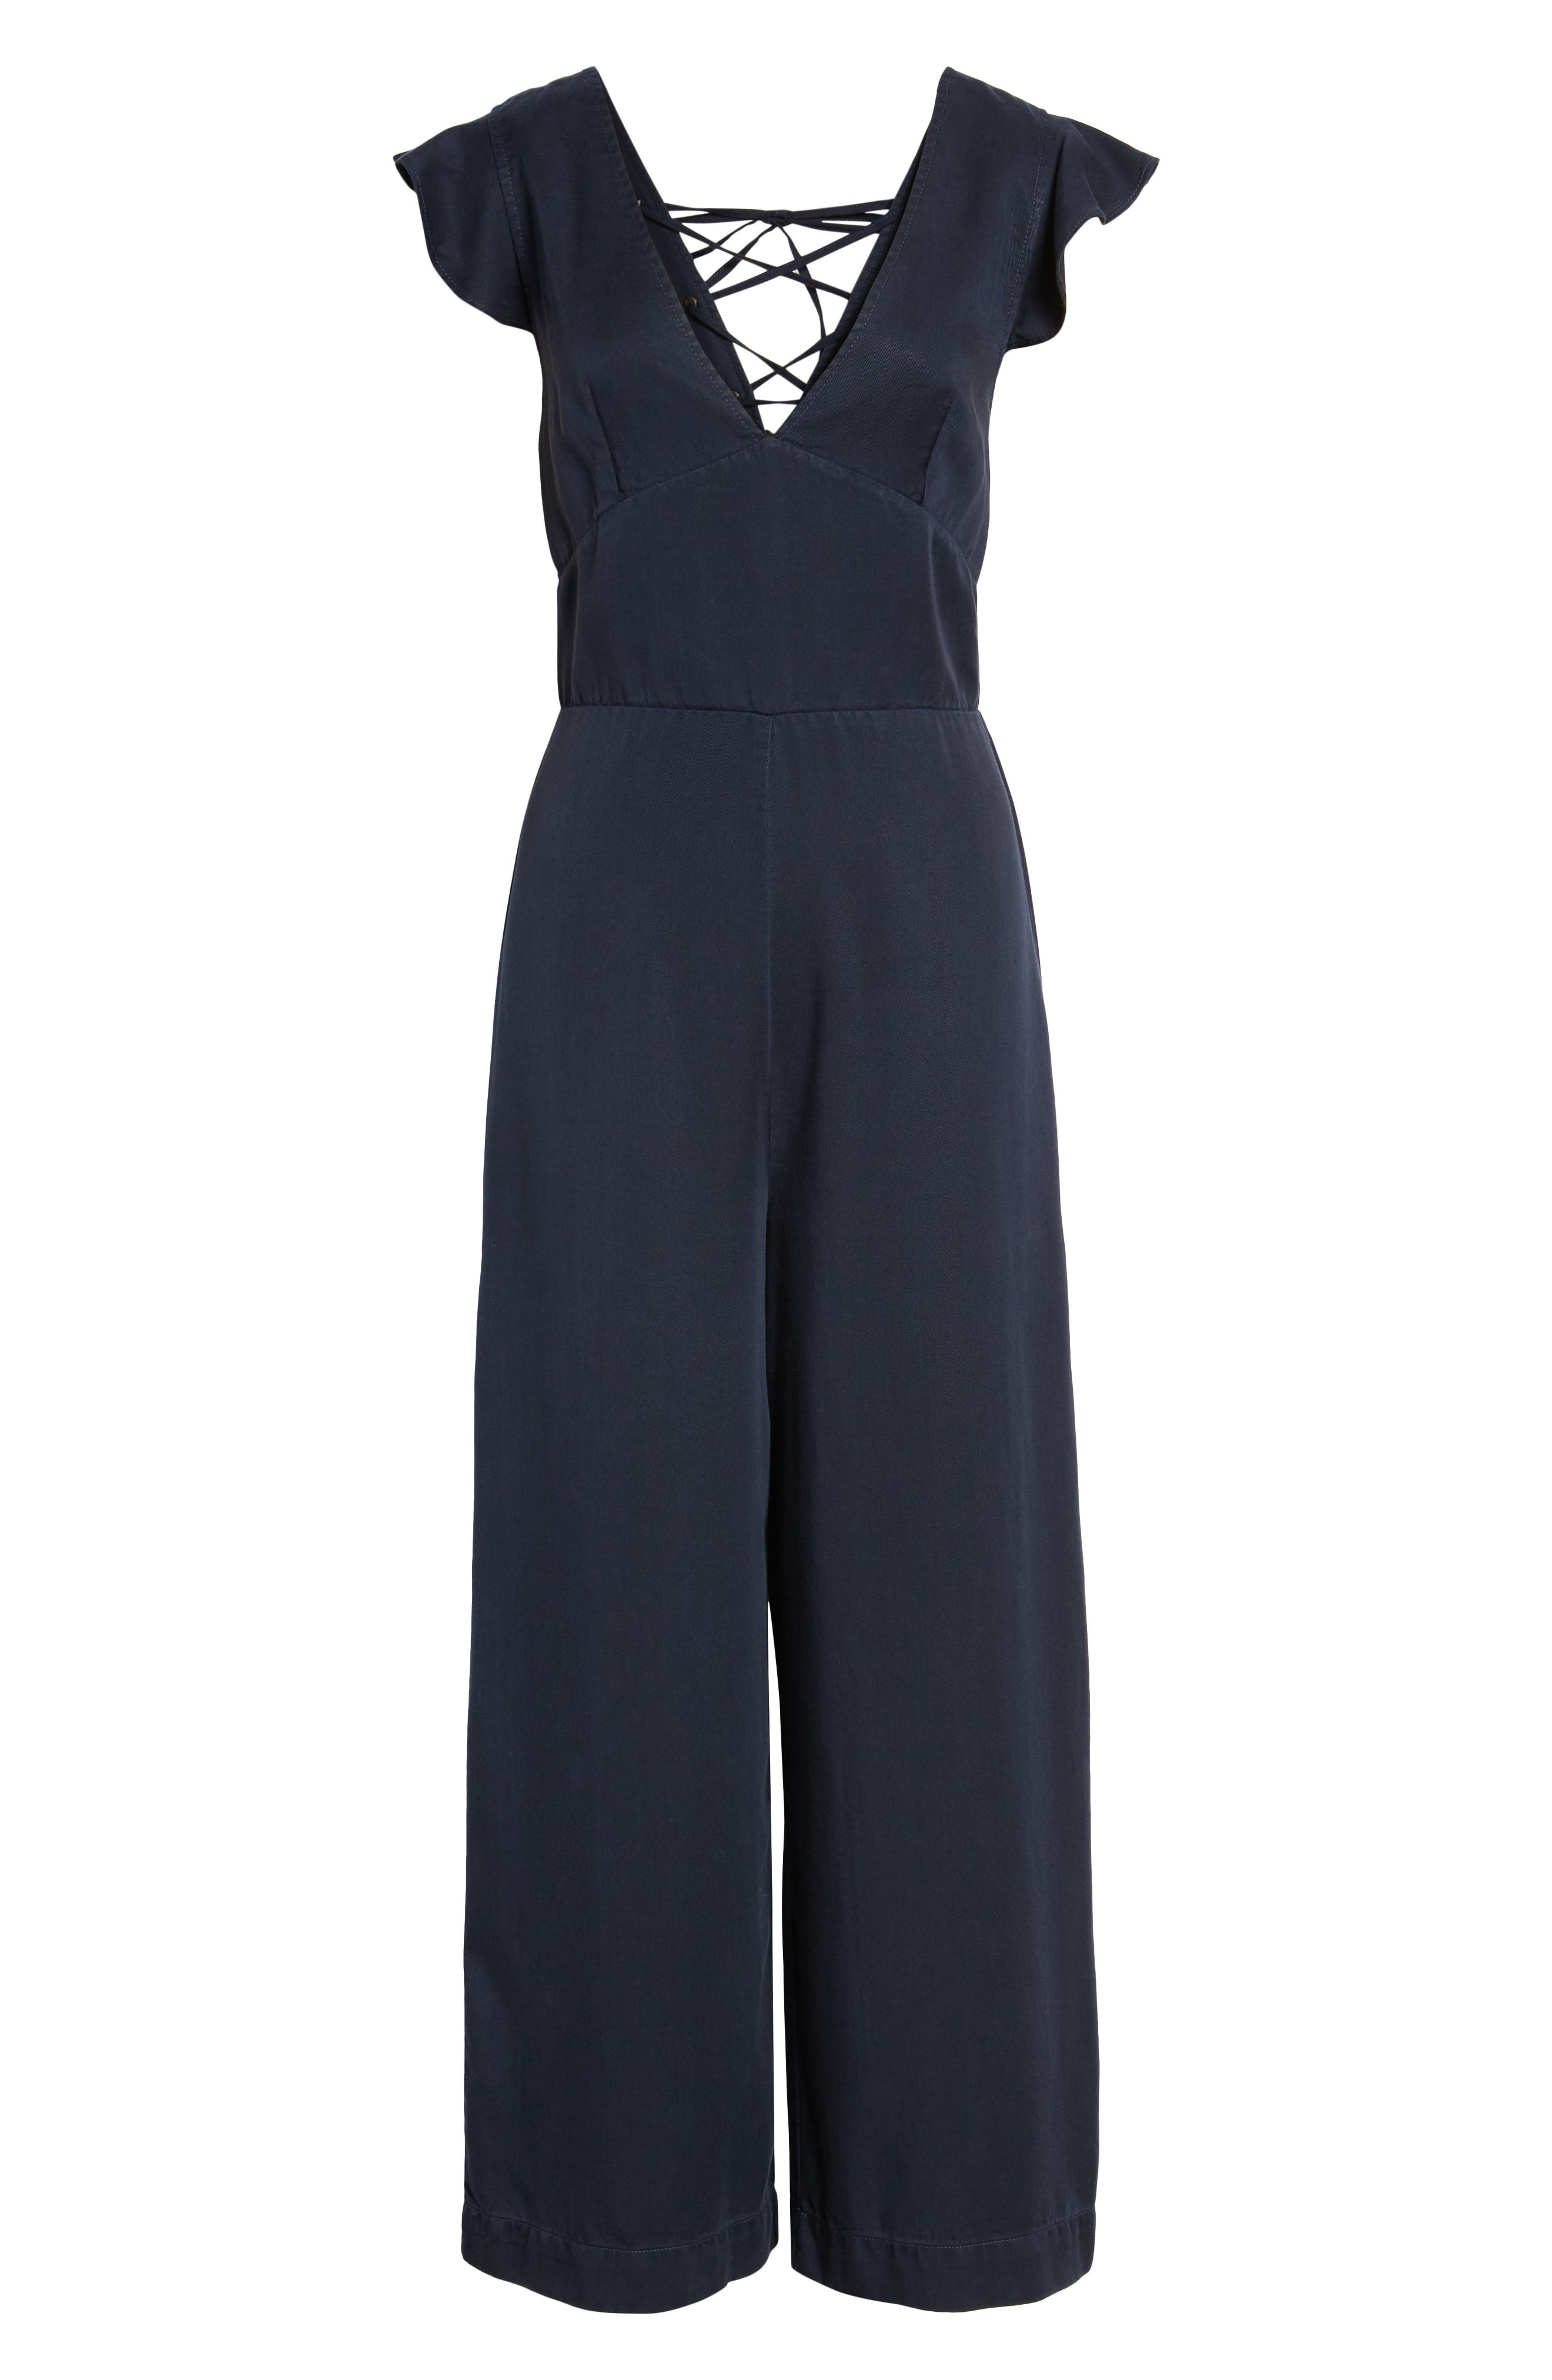 Ruffle Sleeve Jumpsuit,                             Alternate thumbnail 7, color,                             410